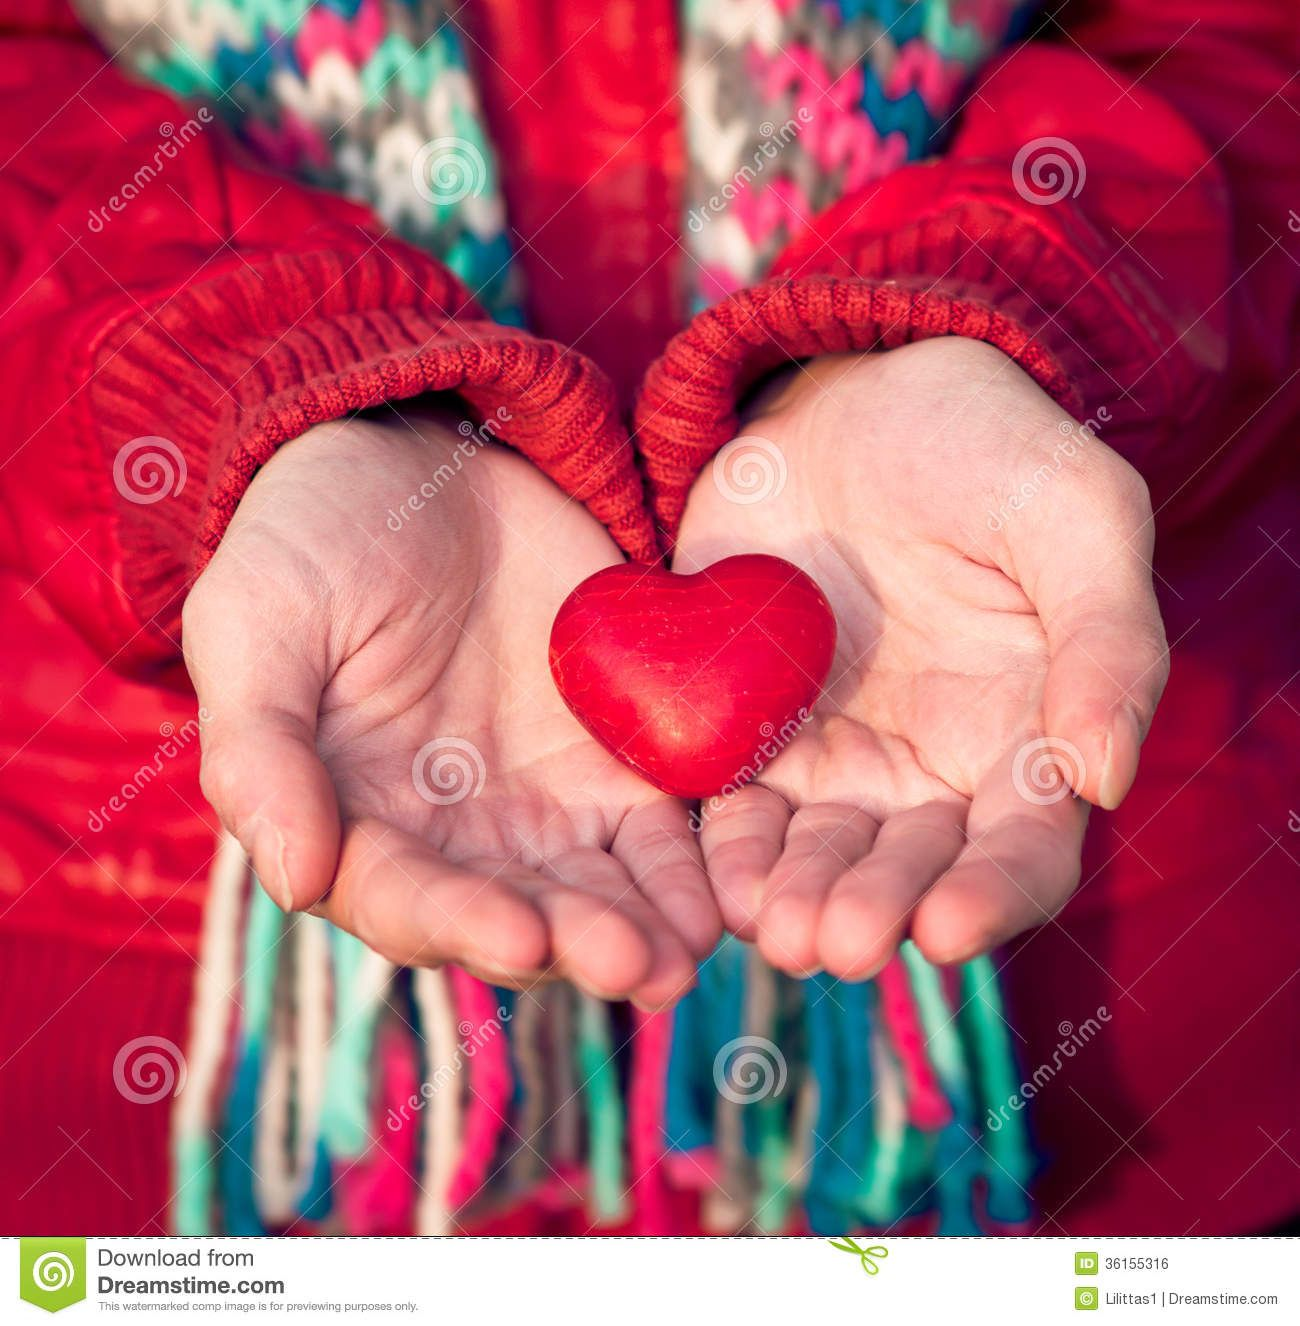 Related image once upon a valentines fairtytale just tween 2 heart shape love symbol in woman hands stock photo image 36155778 buycottarizona Image collections